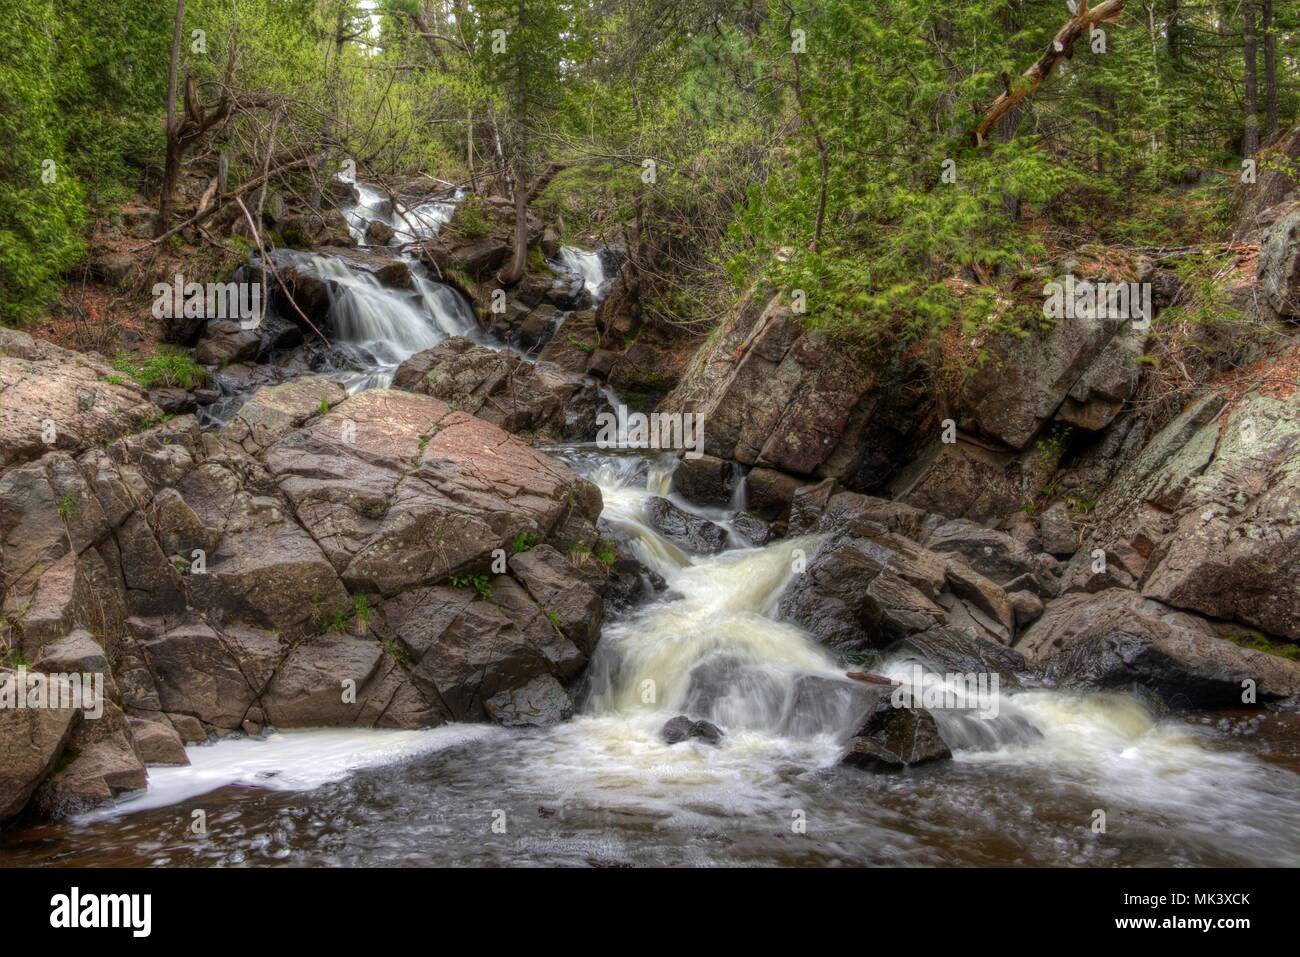 Congdon is one of the many city parks in Duluth, Minnesota - Stock Image